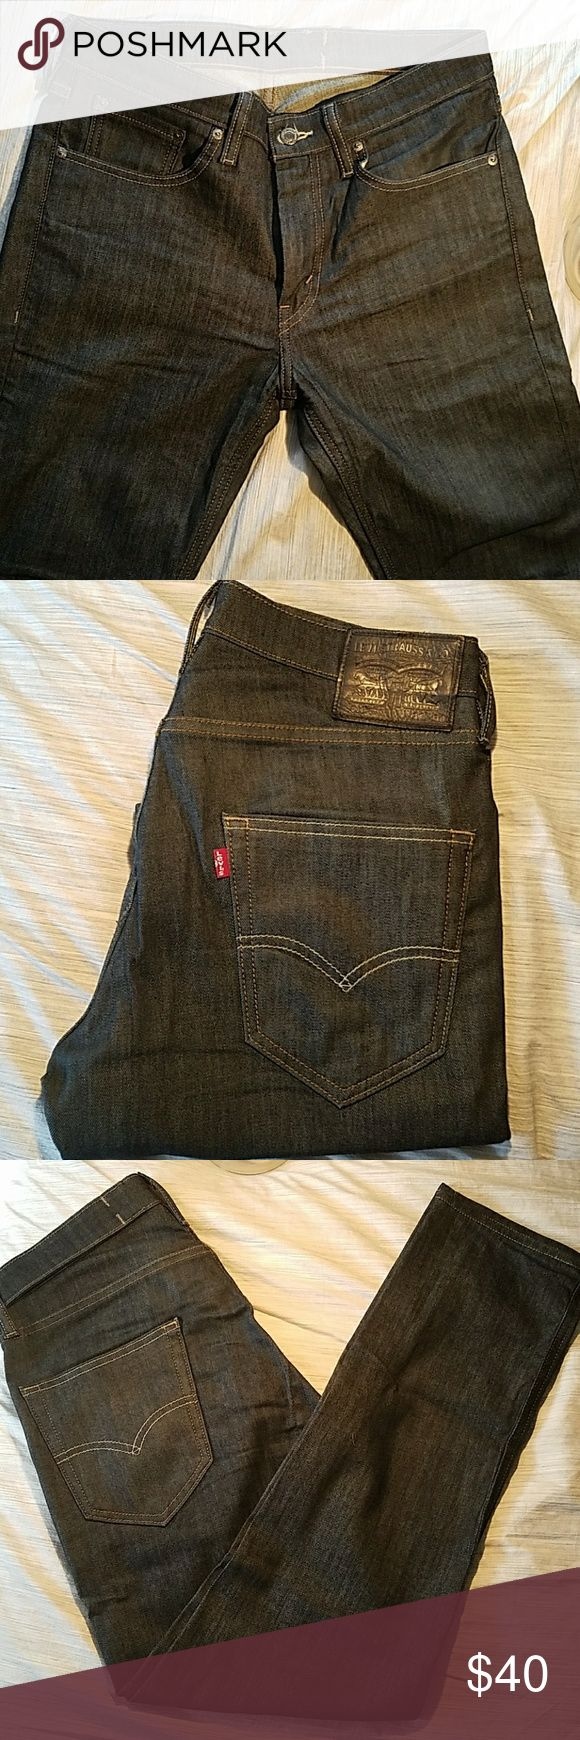 Levi's 511 Mens Jeans - Dark Wash Commuter Size 32 x 30  Commuter Jeans - Made for cyclists, with a reflective lining on the inside of each pant leg. Made to be visible when the wearer cuffs up his pant leg while riding his bike.  Slightly worn. Excellent condition. Levi's Jeans Skinny